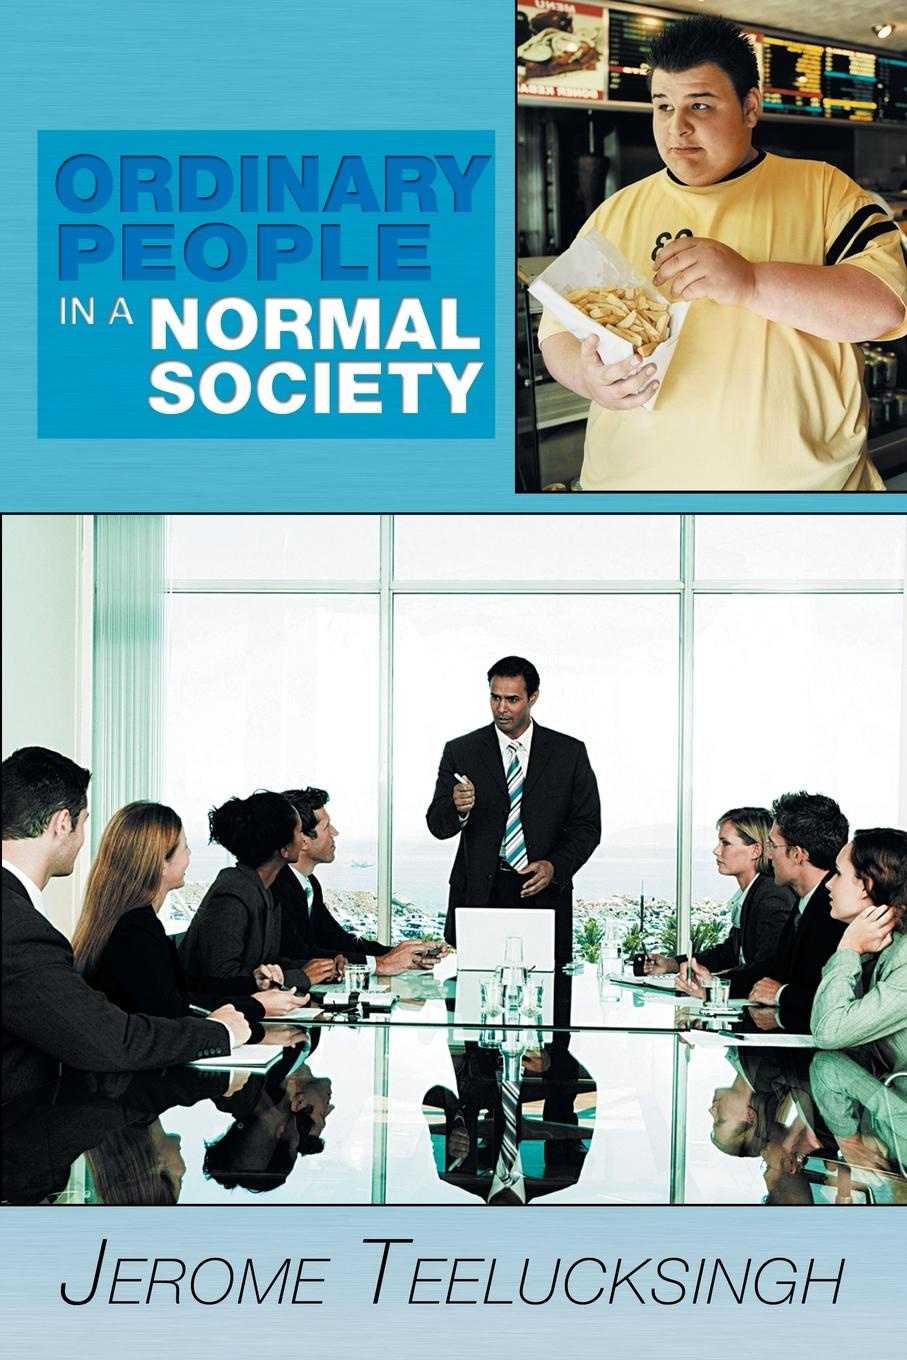 Jerome Teelucksingh Ordinary People in a Normal Society